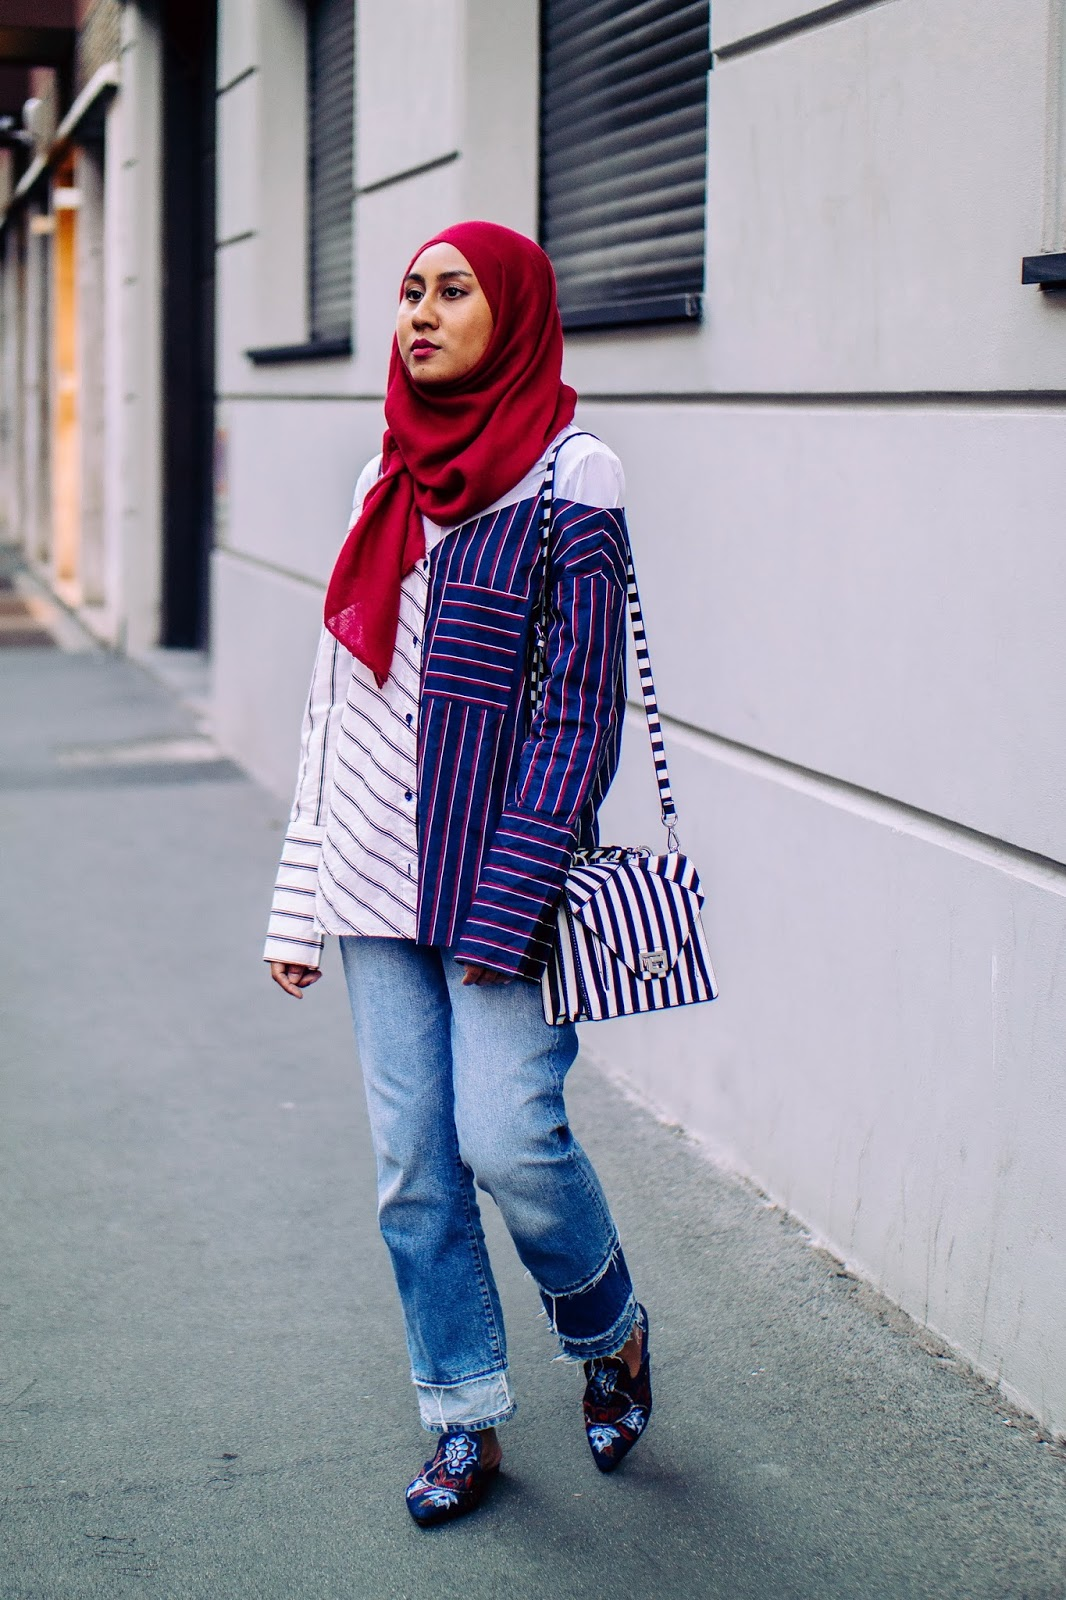 d64c8f21199d8c As a hijabi I personally find that it isn t easy to embrace any trend  fully. For example